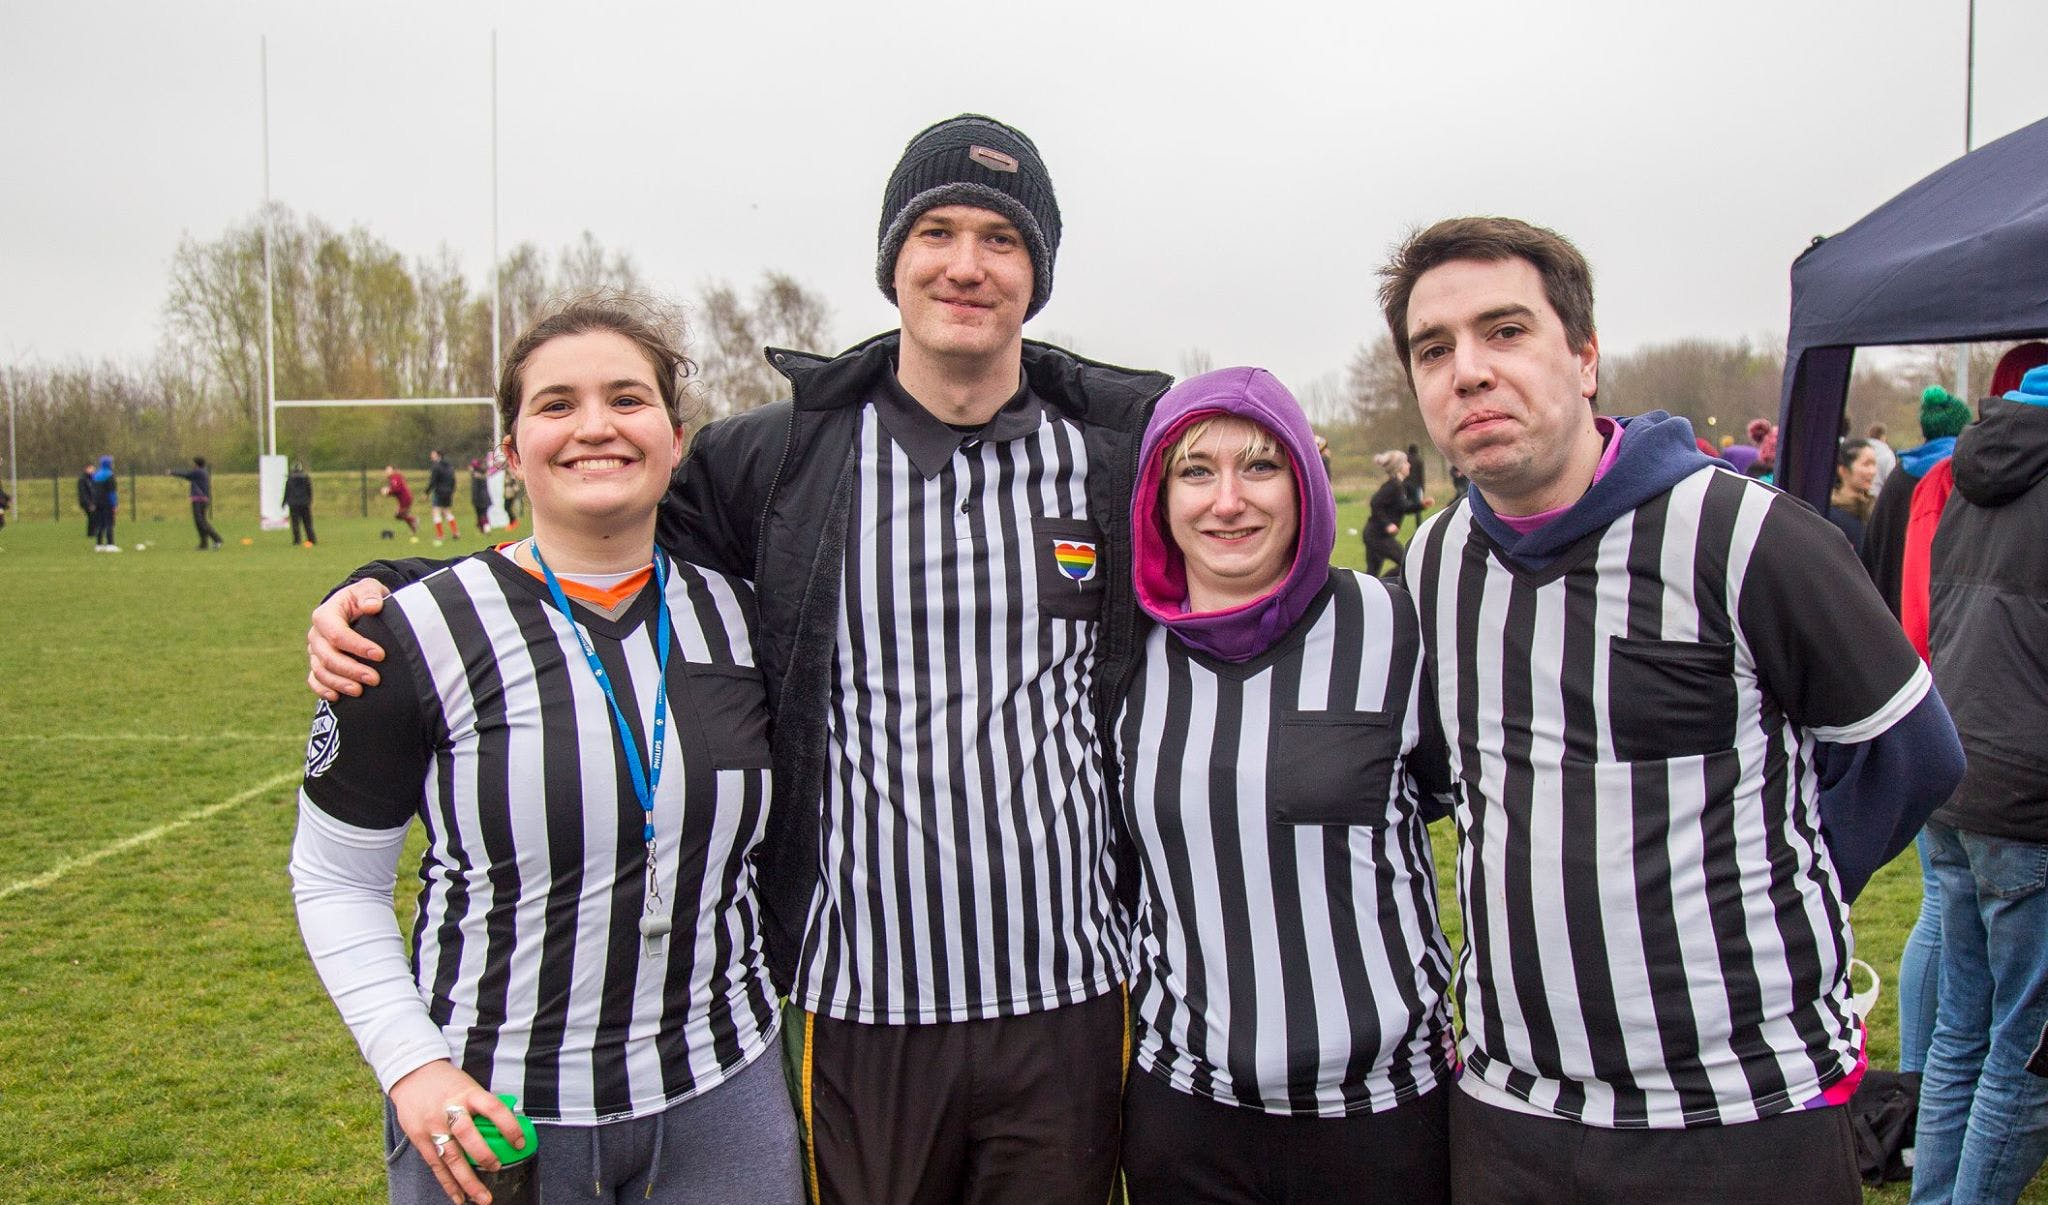 Refs pose together before a match, all wearing their referee shirts